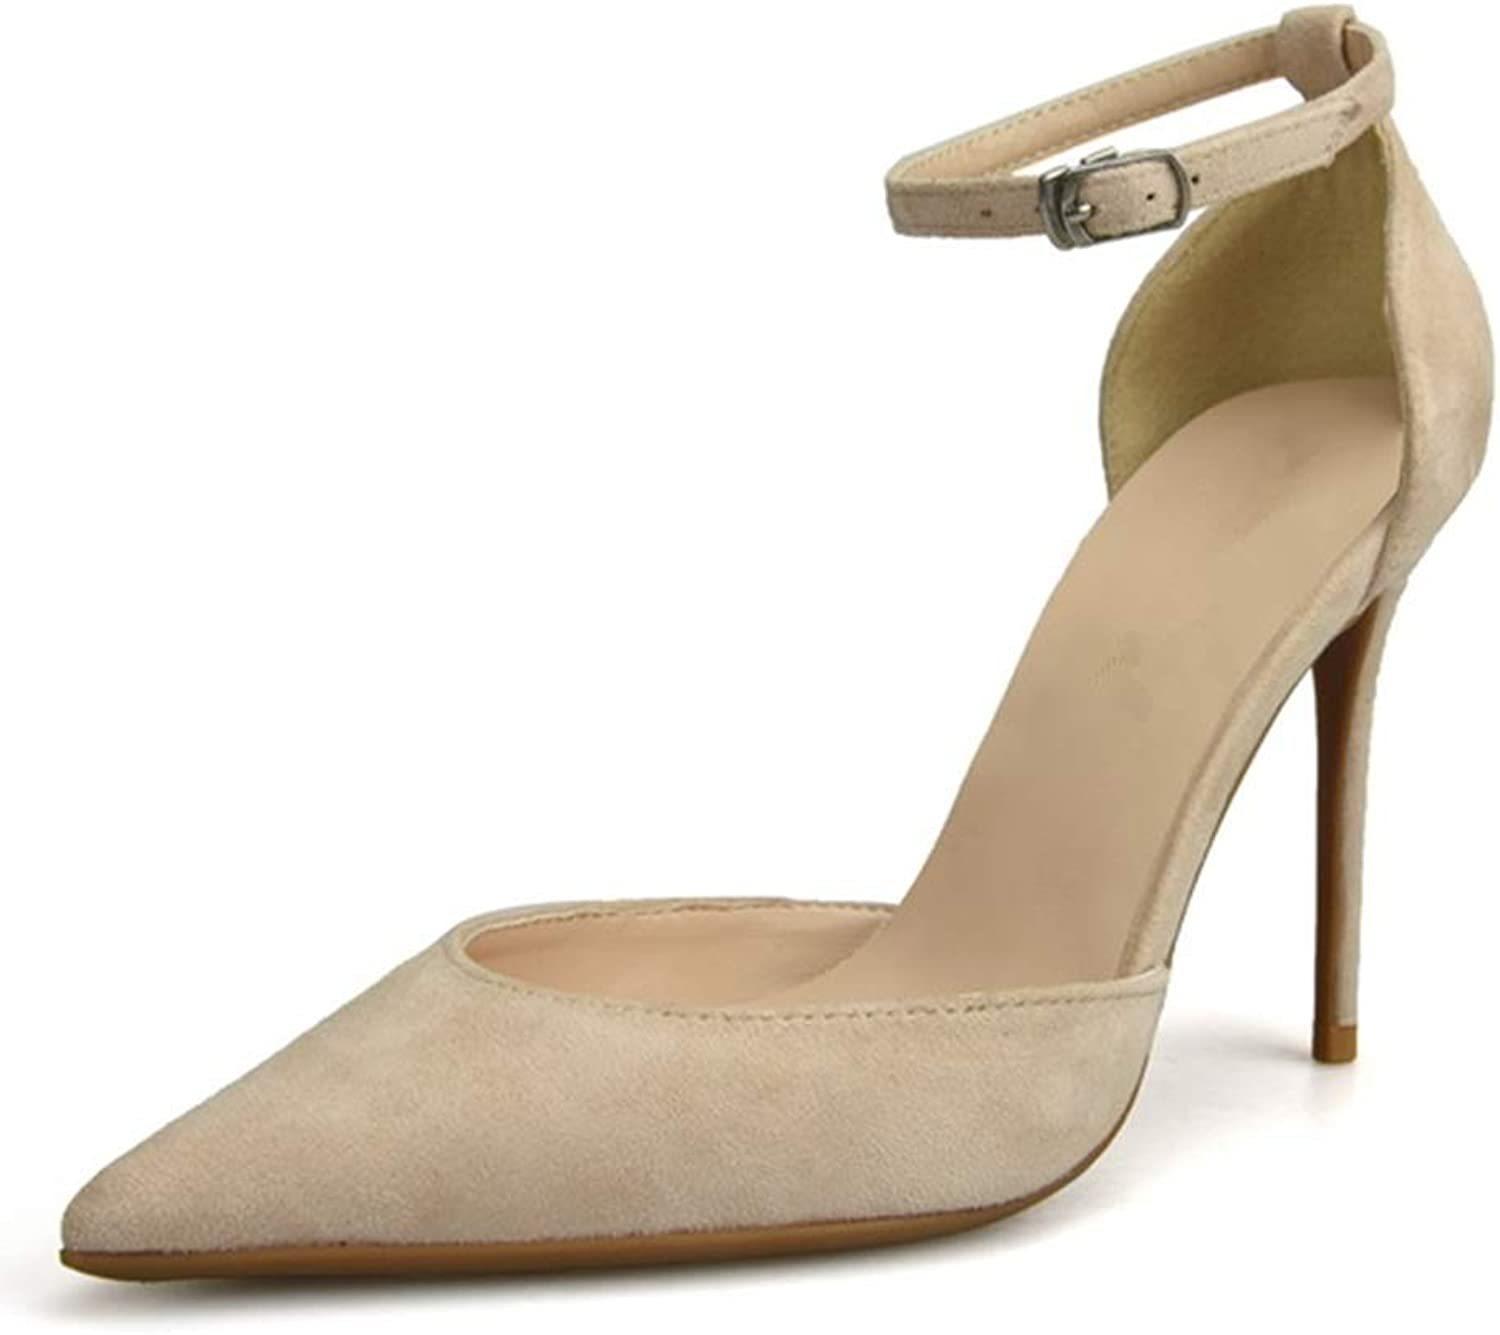 Lindarry Ankle Strap Sandals for Women Stiletto High Heeled Pumps for Ladies Pointed Side Cut Out Faux Suede Fashion (color   Nude, Size   11 M US)